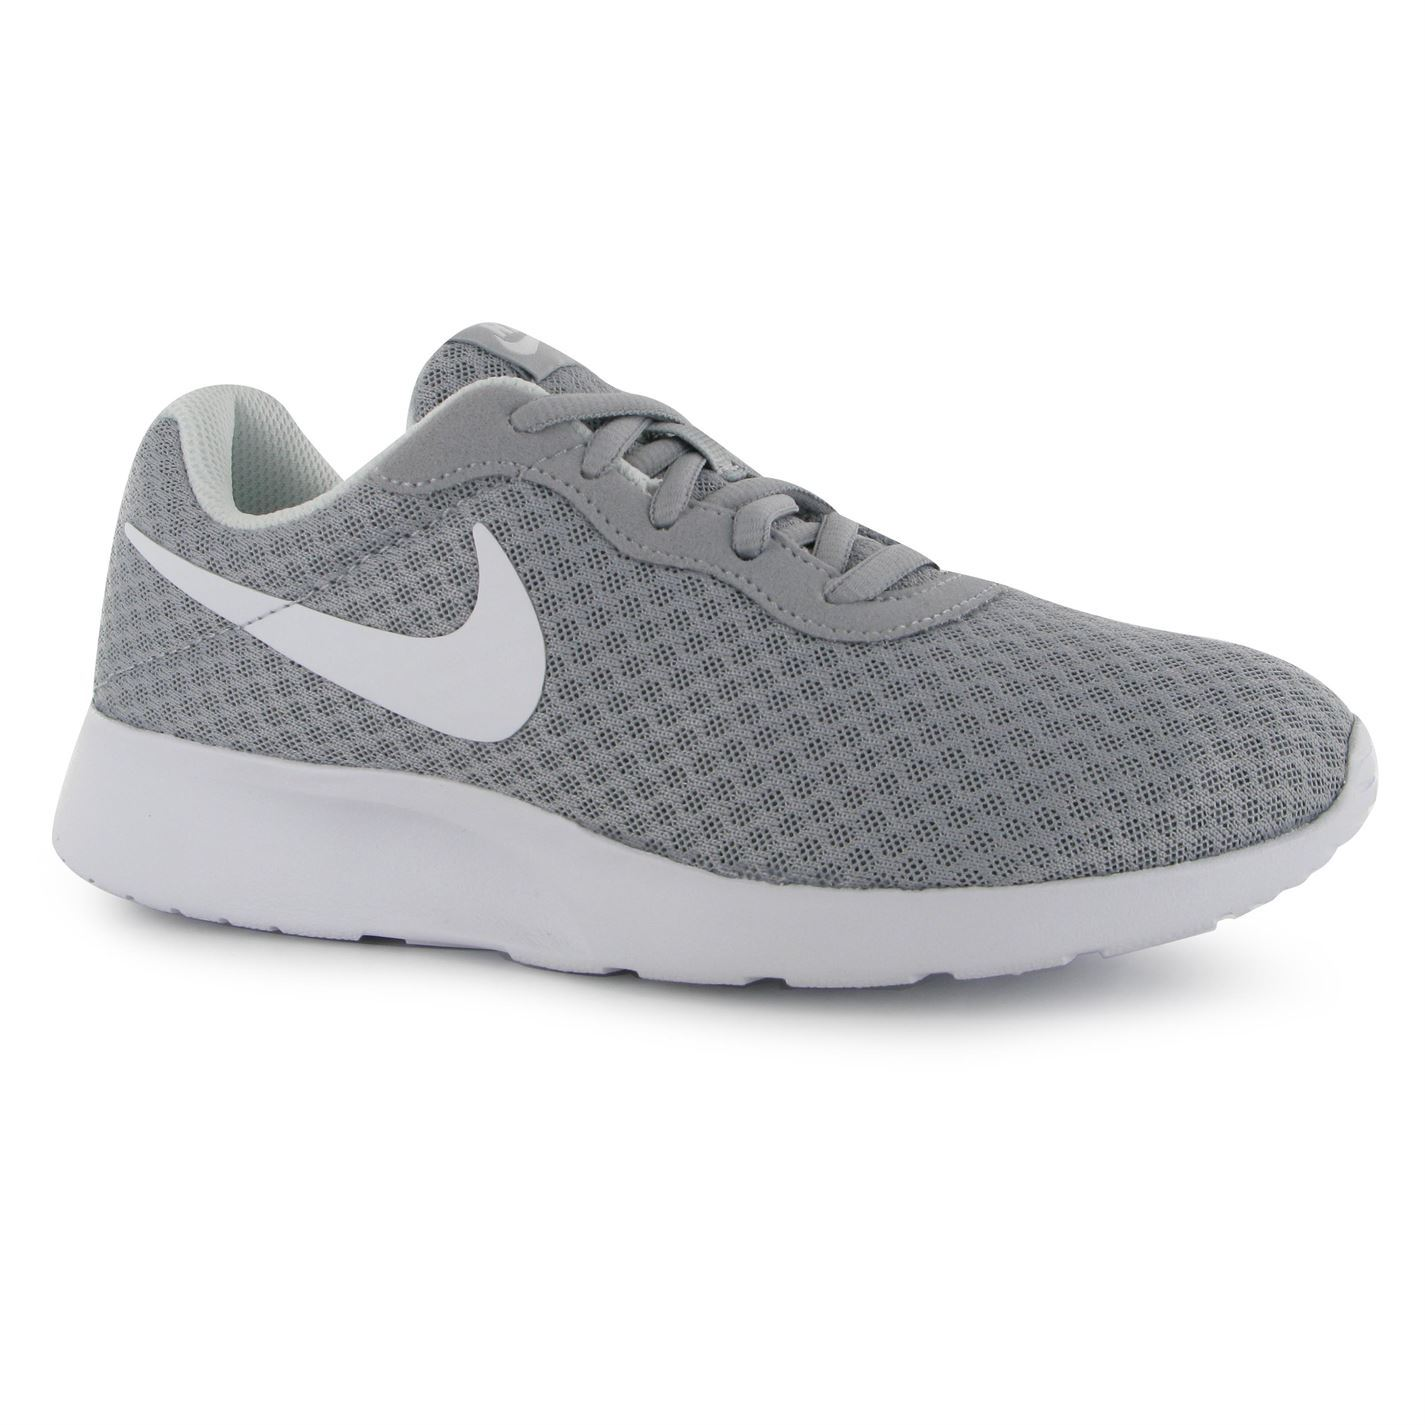 Nike Tanjun Fitness Trainers Womens Grey/White Gym Workout Sneakers Shoes